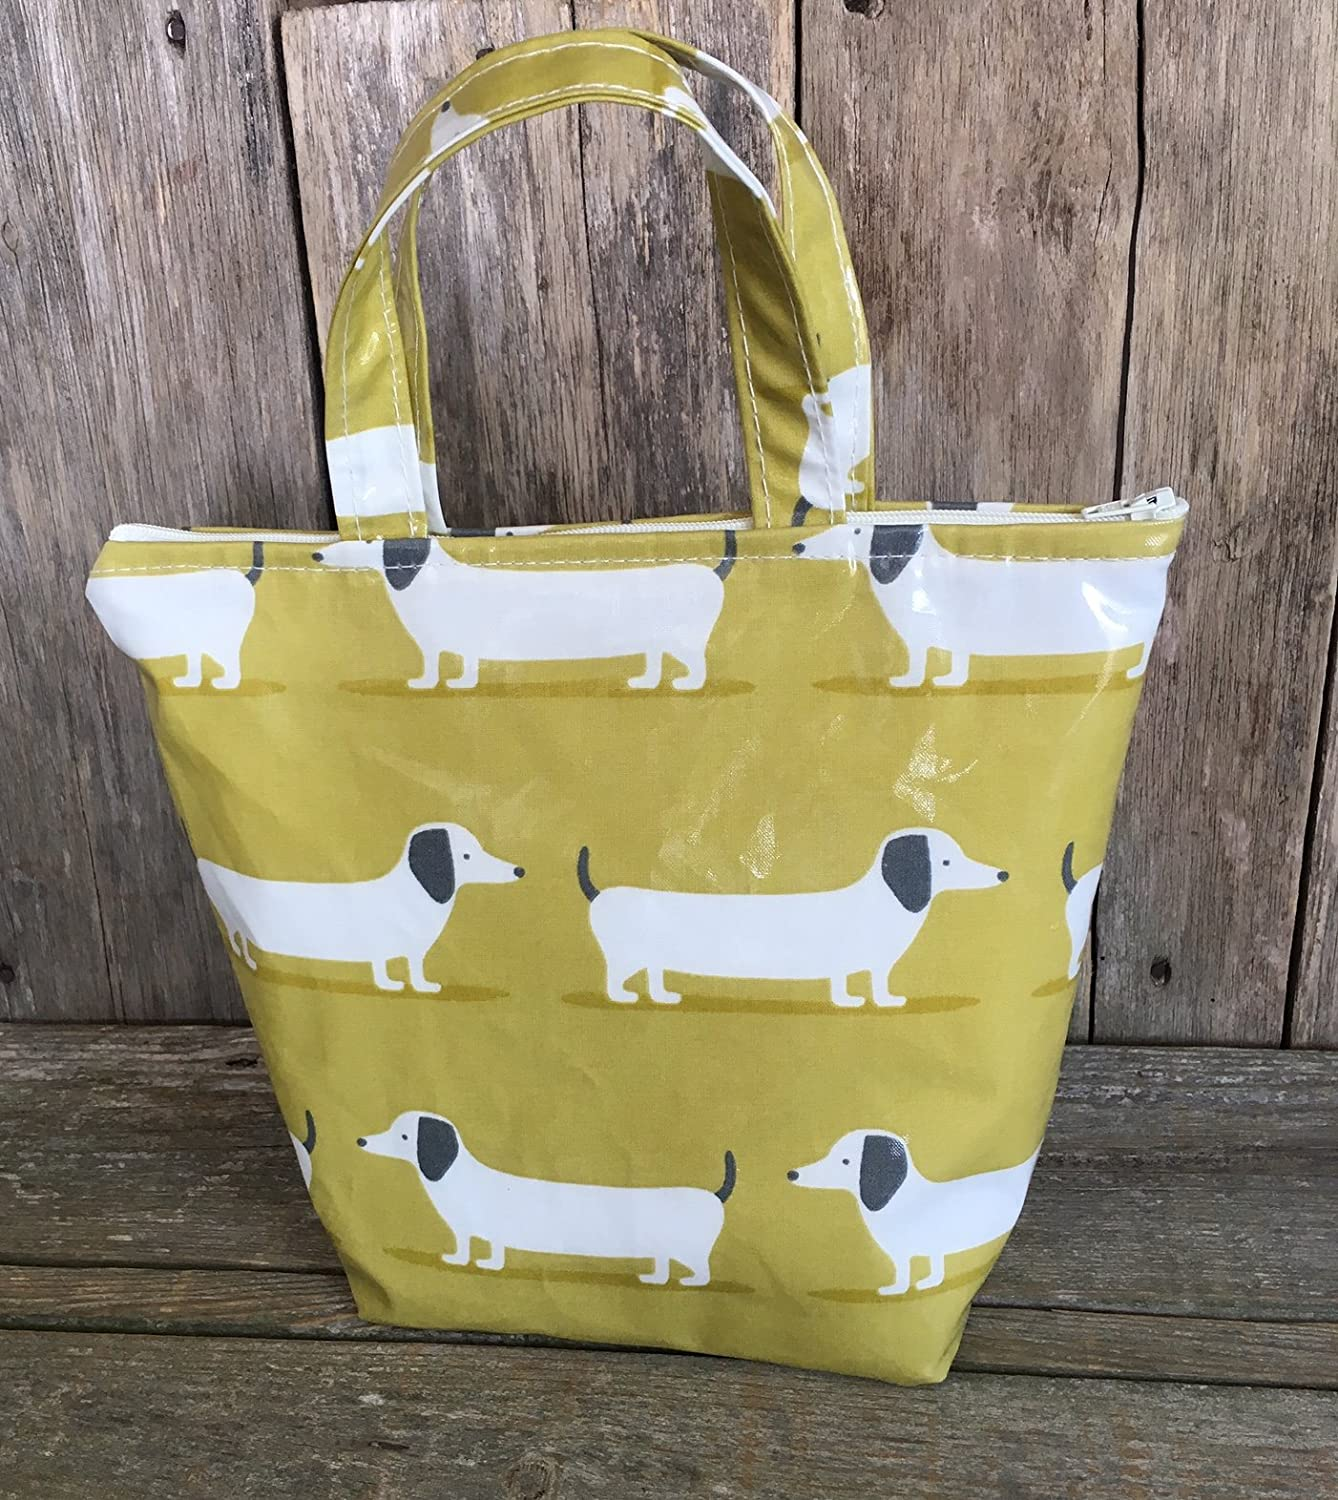 Insulated Lunch Bag,school Bag,lunch Tote,cool Bag,picnic Bag,birds Oilcloth